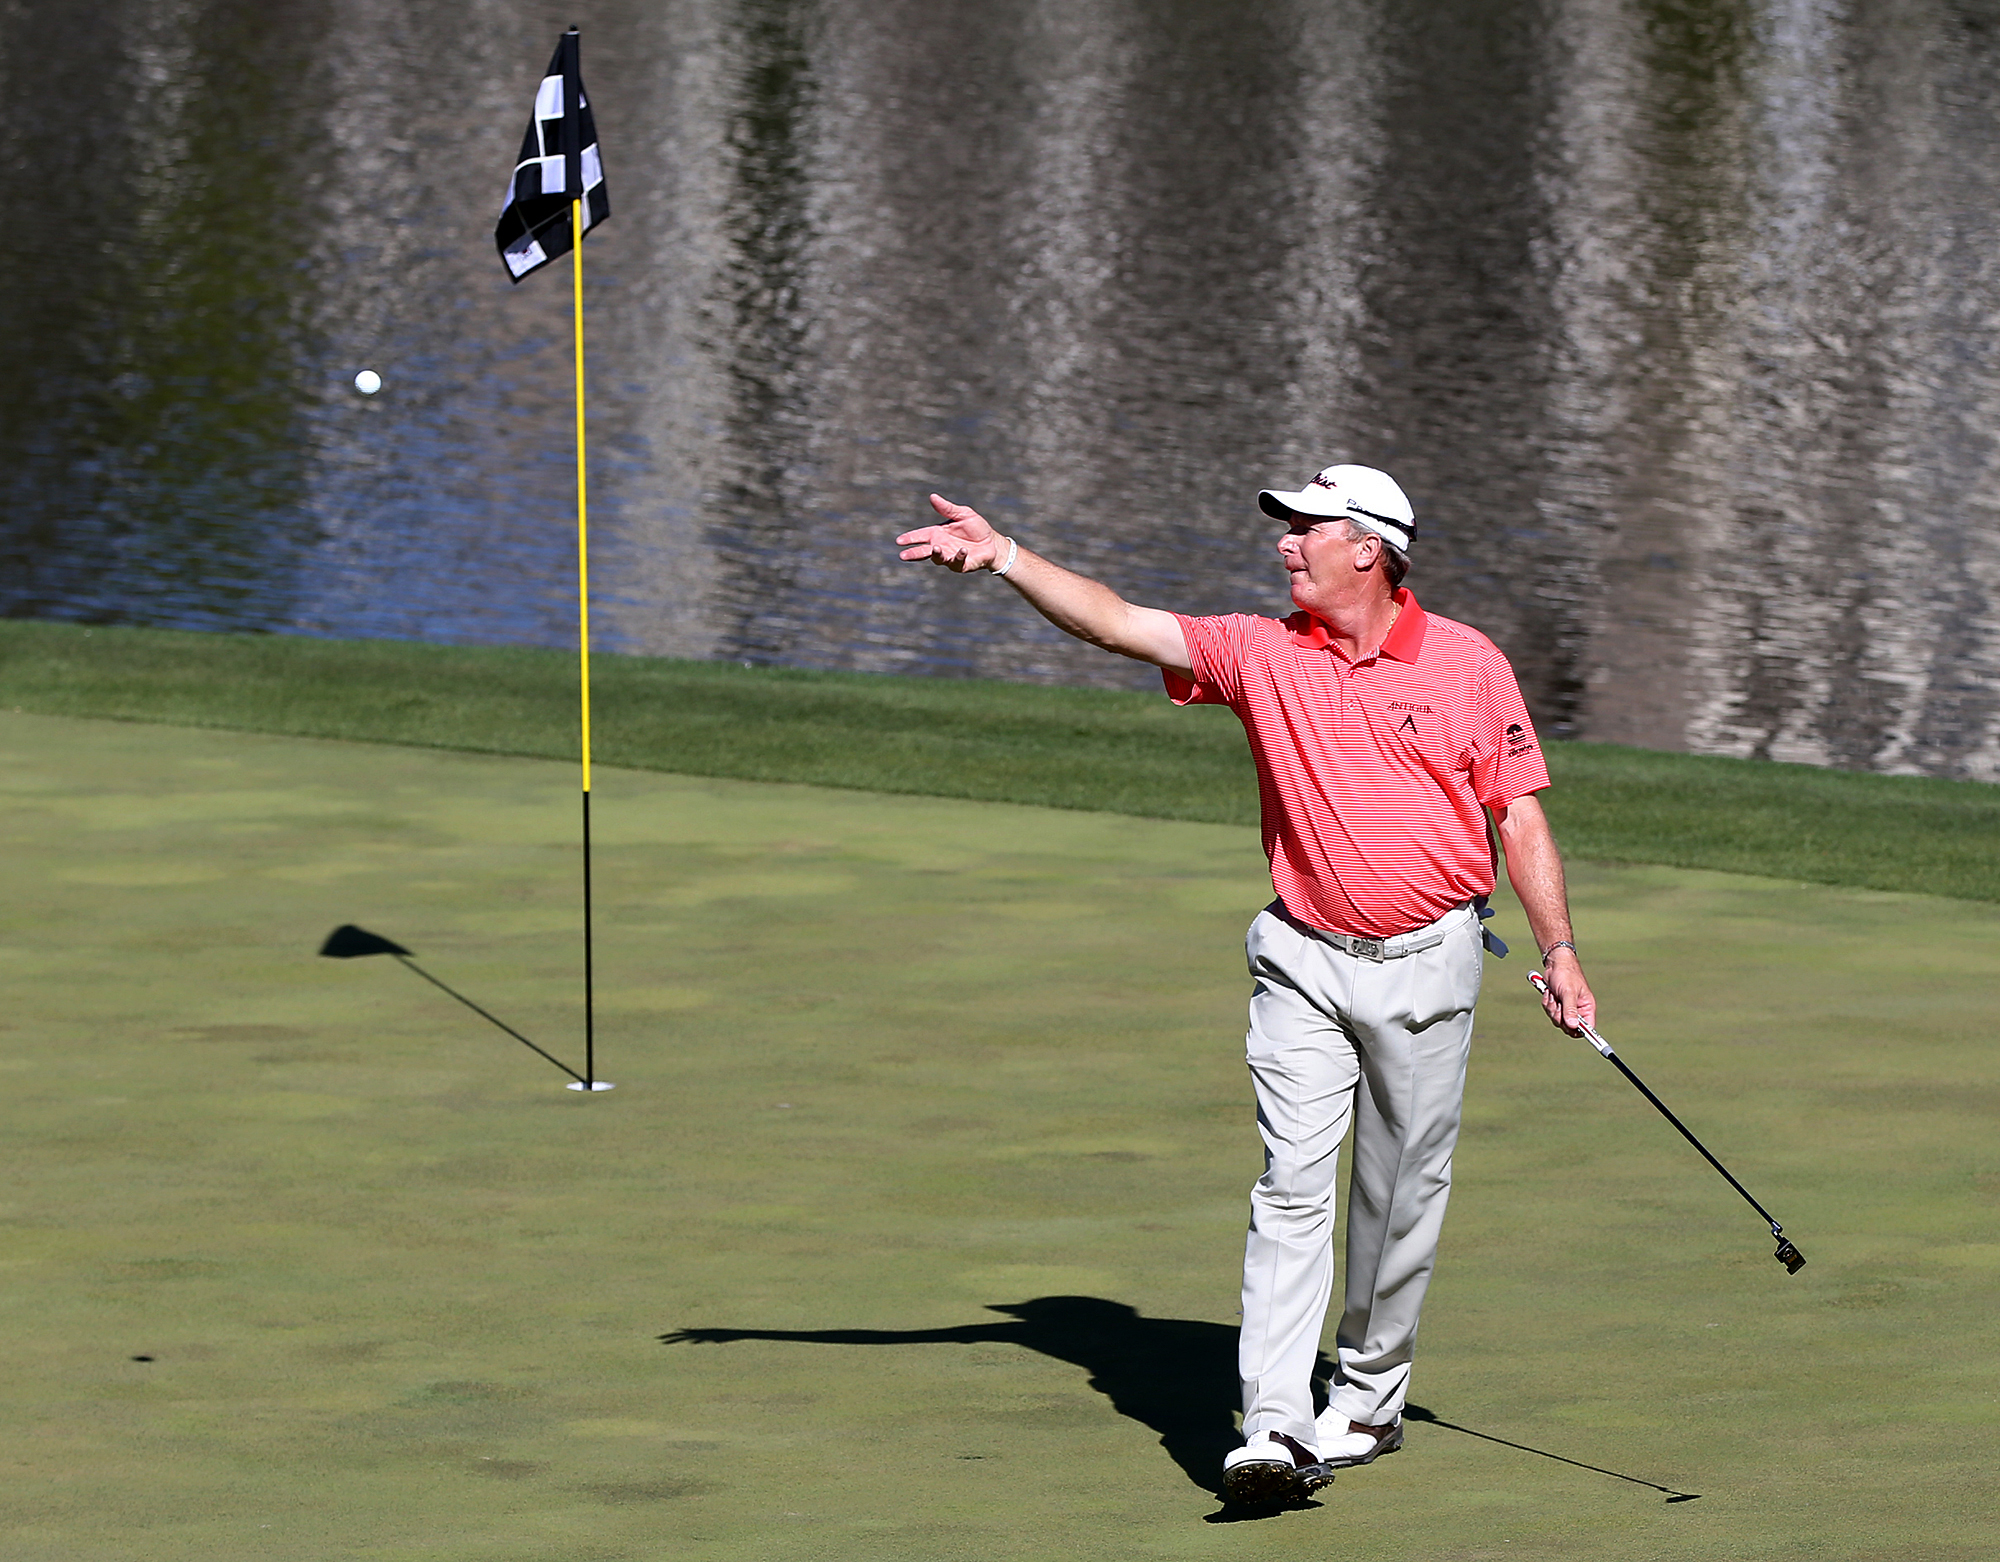 Woody Austin tosses his golf ball after making par on the 18th hole that resulted in a playoff with Wes Short Jr. during the PGA Tour Champions golf tournament at TPC Sugarloaf on Sunday, April 17, 2016, in Duluth, Ga. Austin tied the tournament record